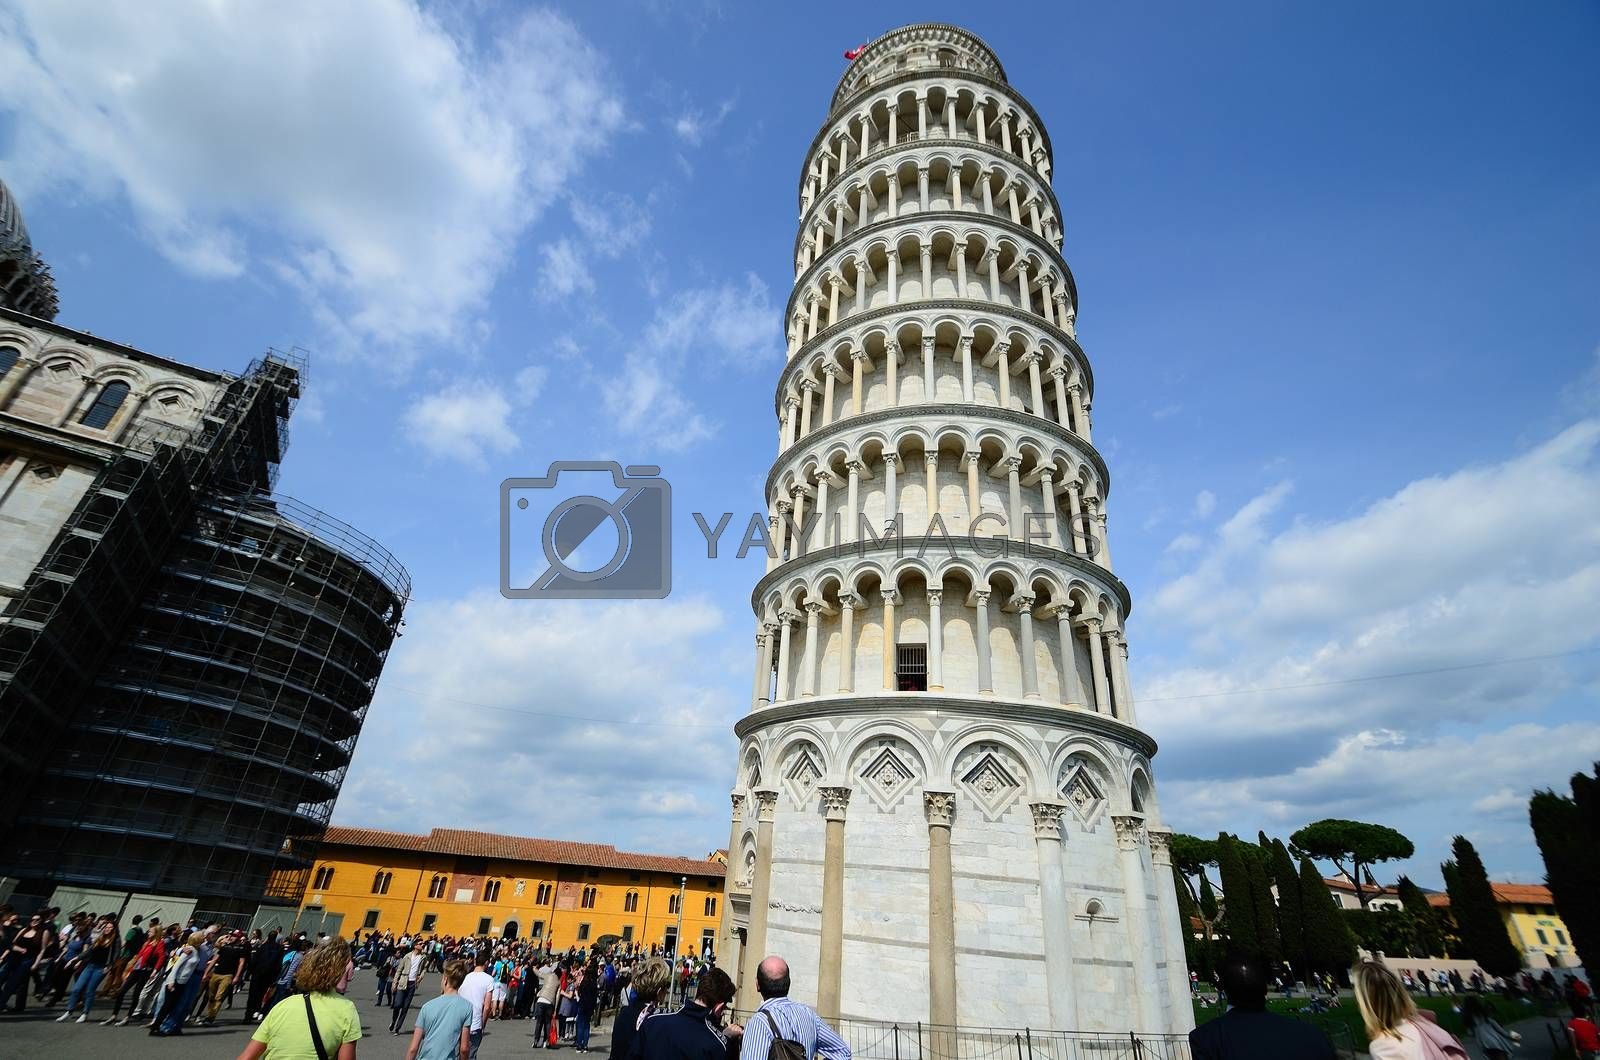 Leaning Tower of Pisa with many tourists and blue sky